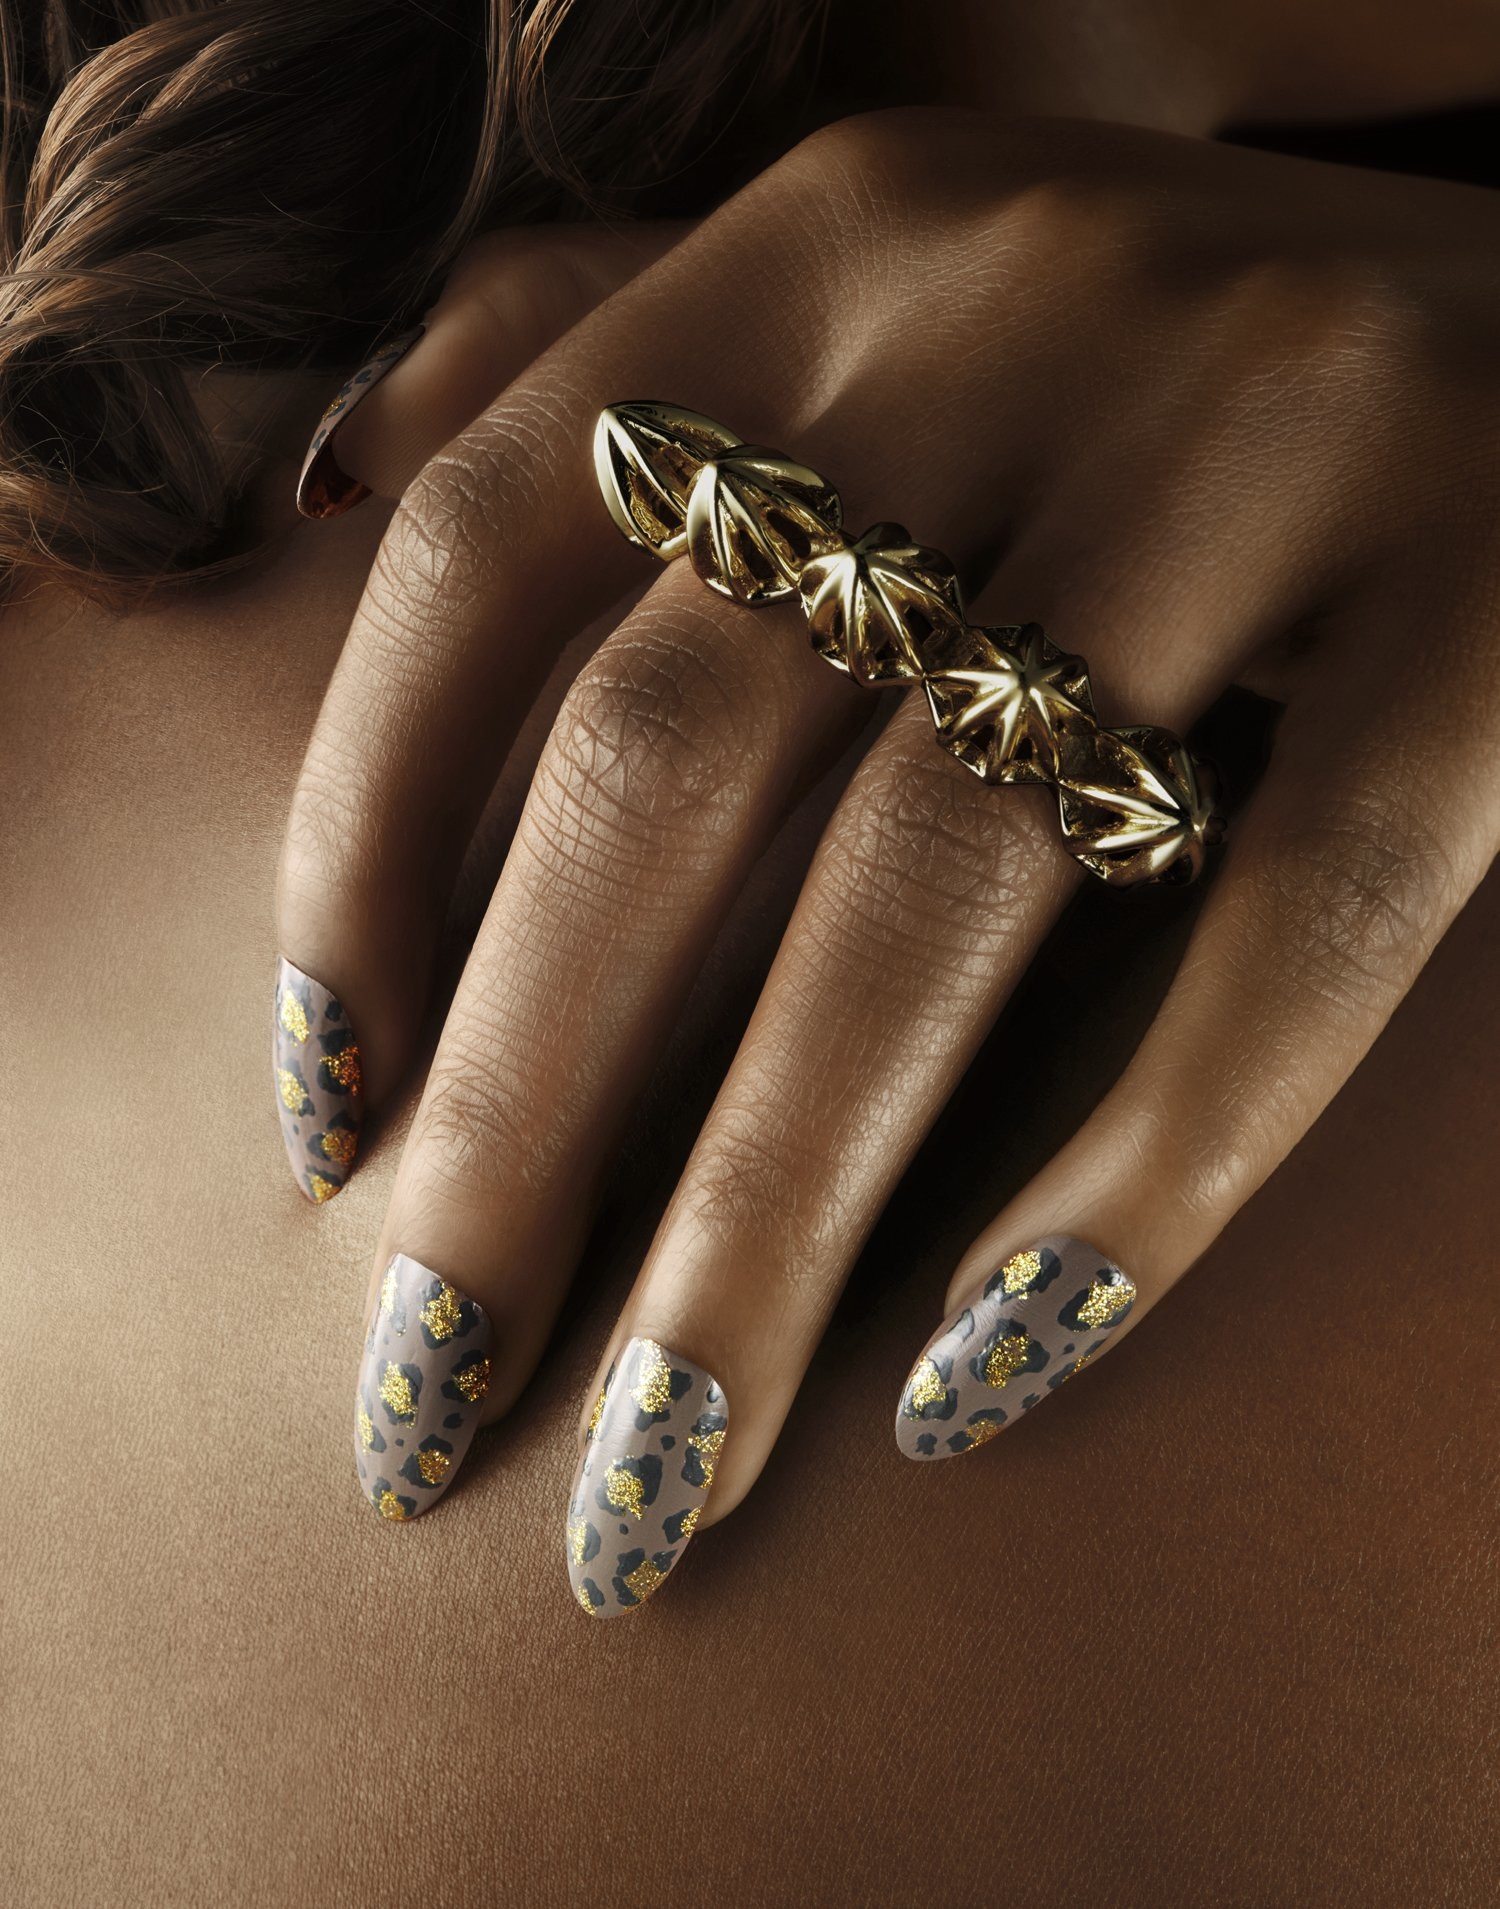 Nigel Cox Photographs Nail Art For Essence Magazine Stockland